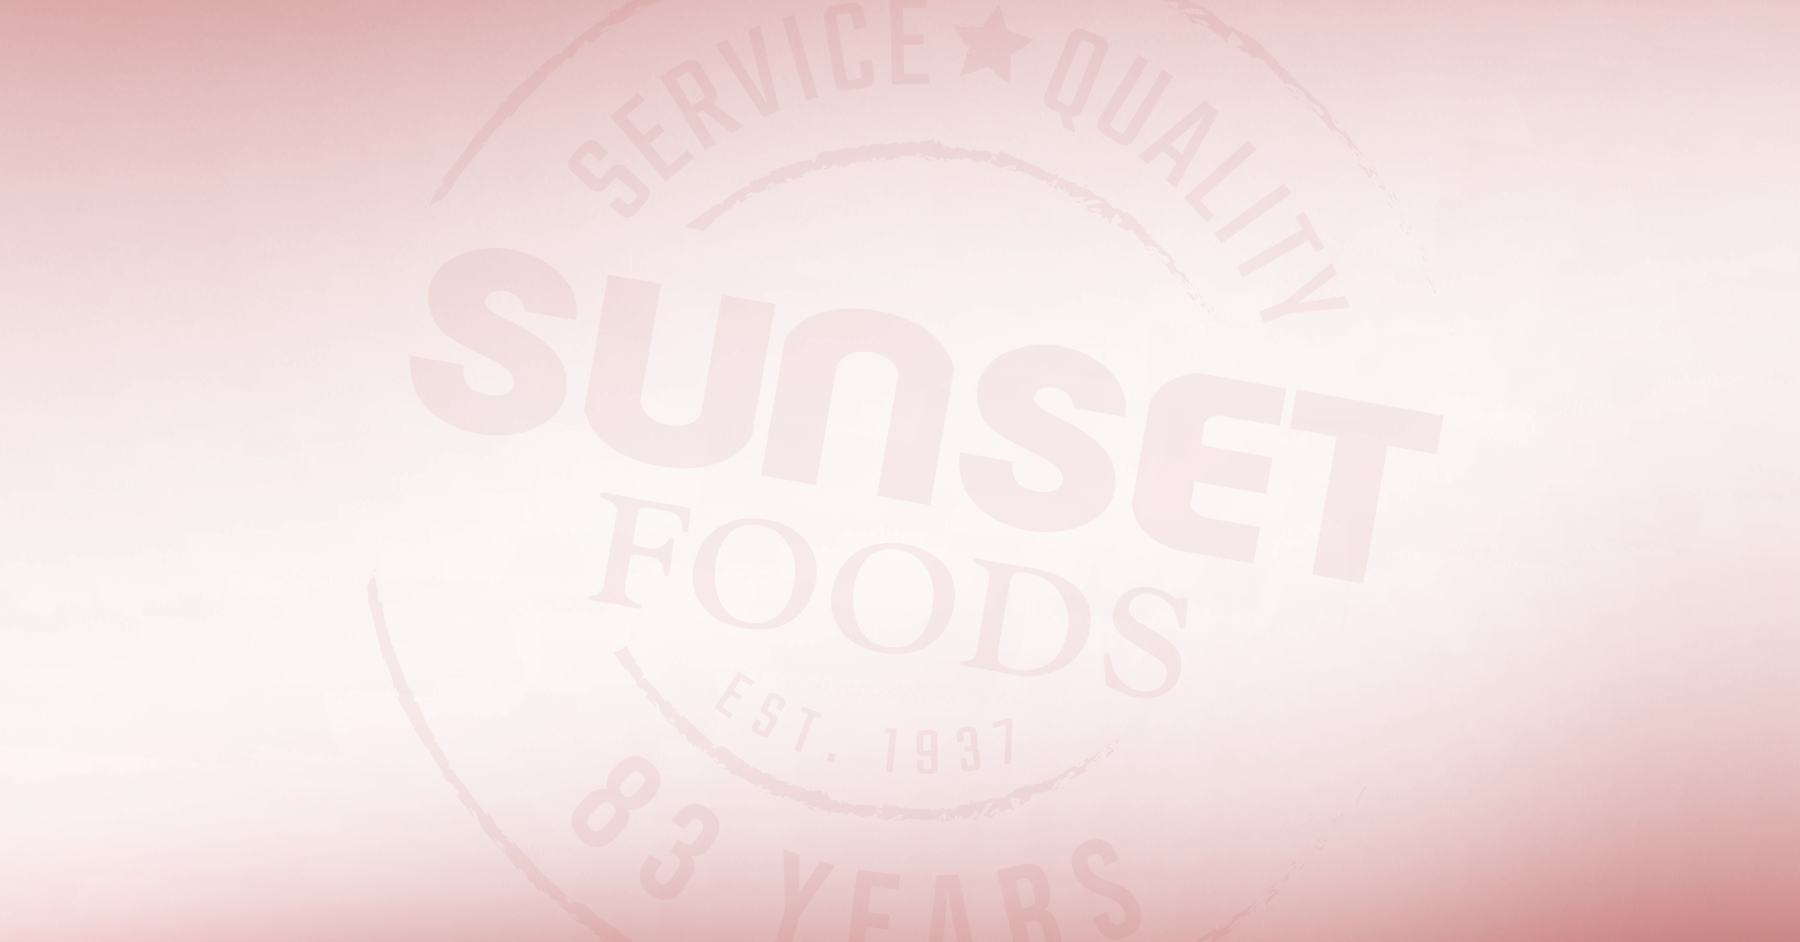 SUNSET_FOODS_SENIOR_HOURS_1800x942_background